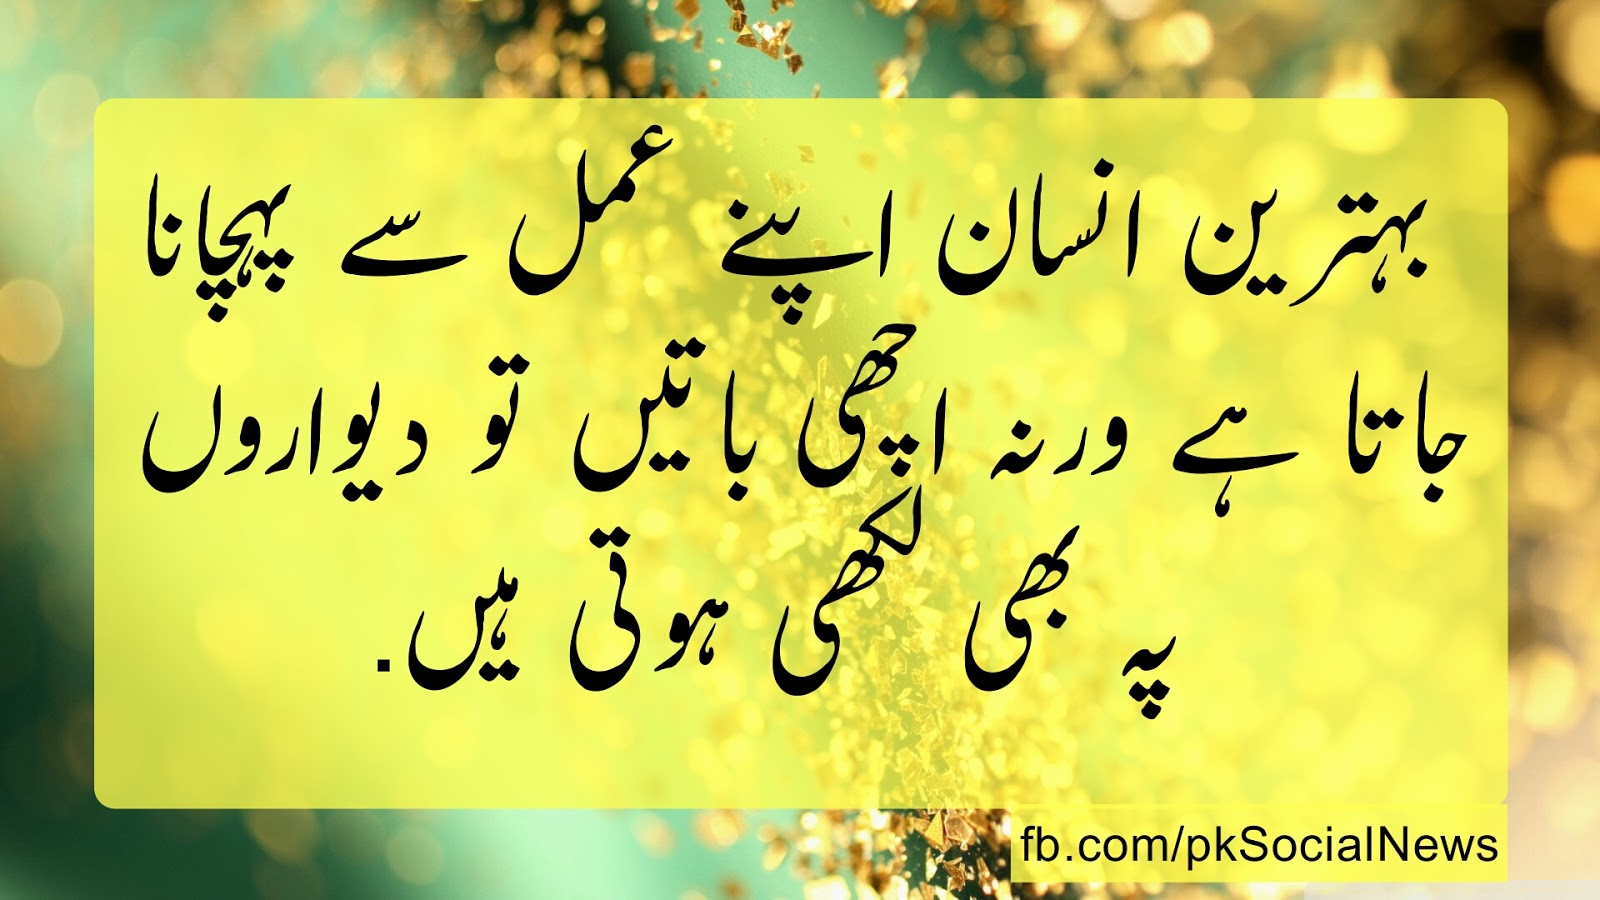 Husband Love Quotes Wallpapers Allah Name Design Urdu Quotes Best Urdu Quotes Pics